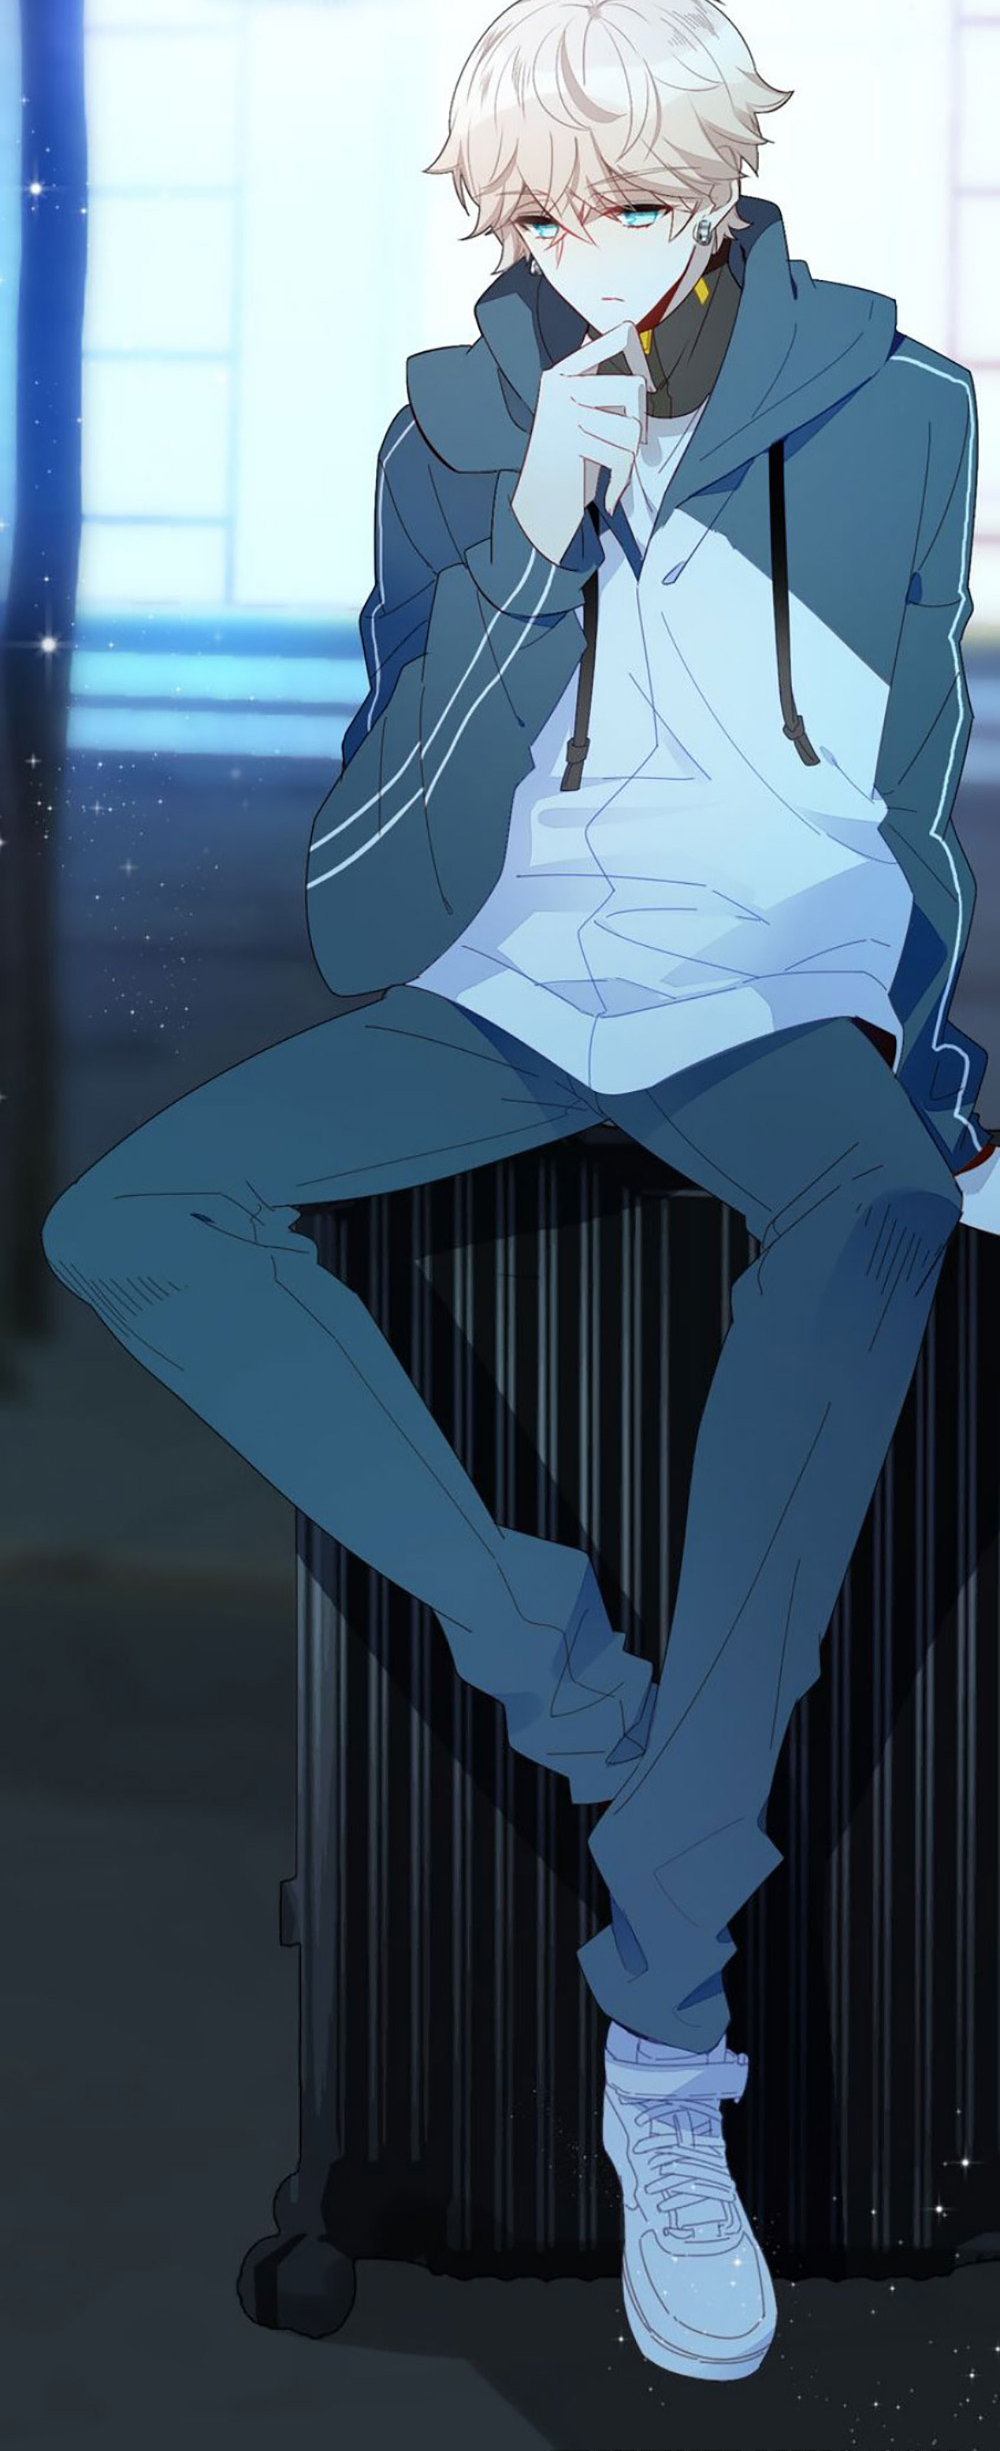 Zuven Avis Why Are You Sitting On A Heater Cute Anime Guys Anime Artwork Anime Characters